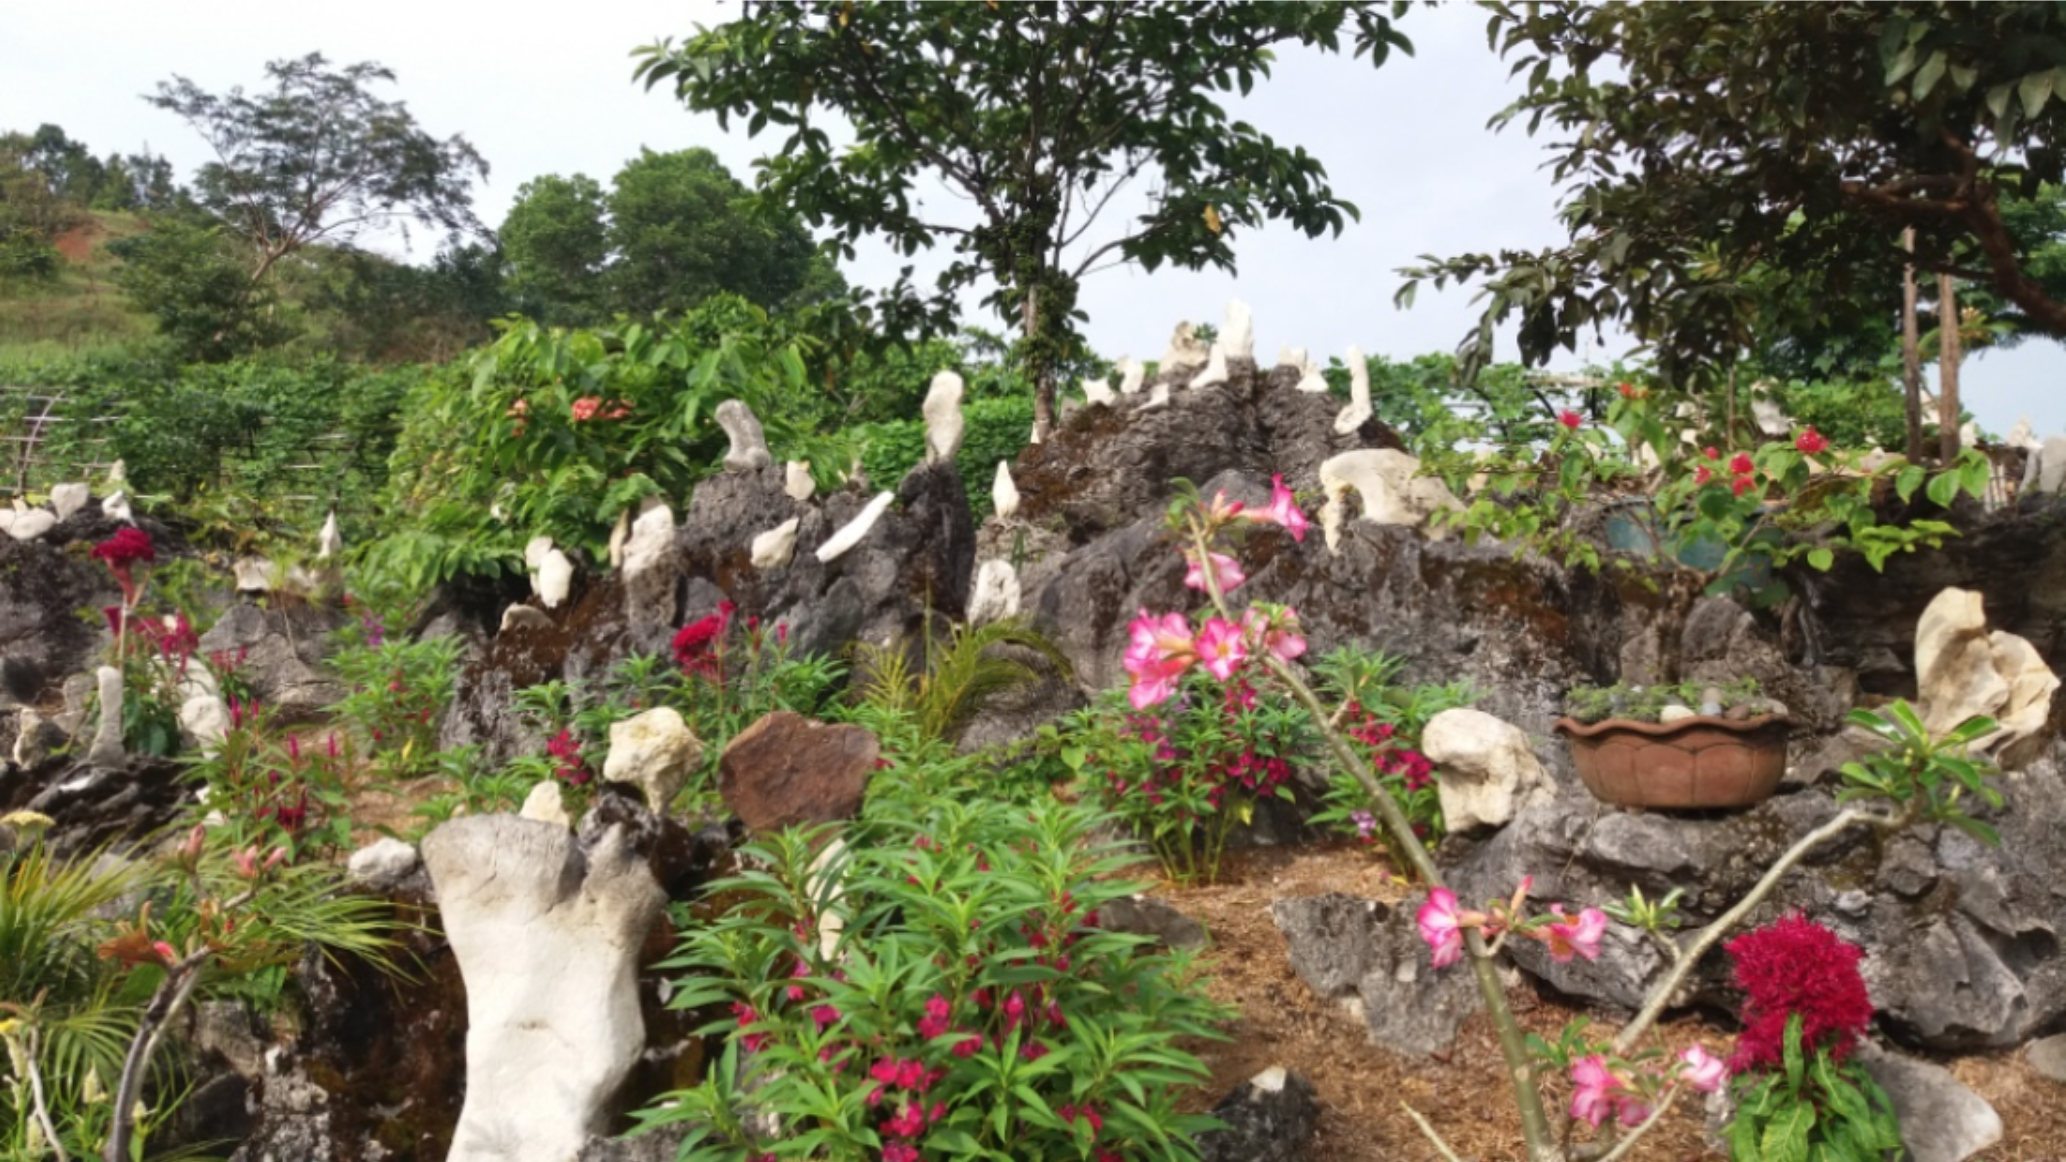 Rocks and flowers in the Prayer Garden